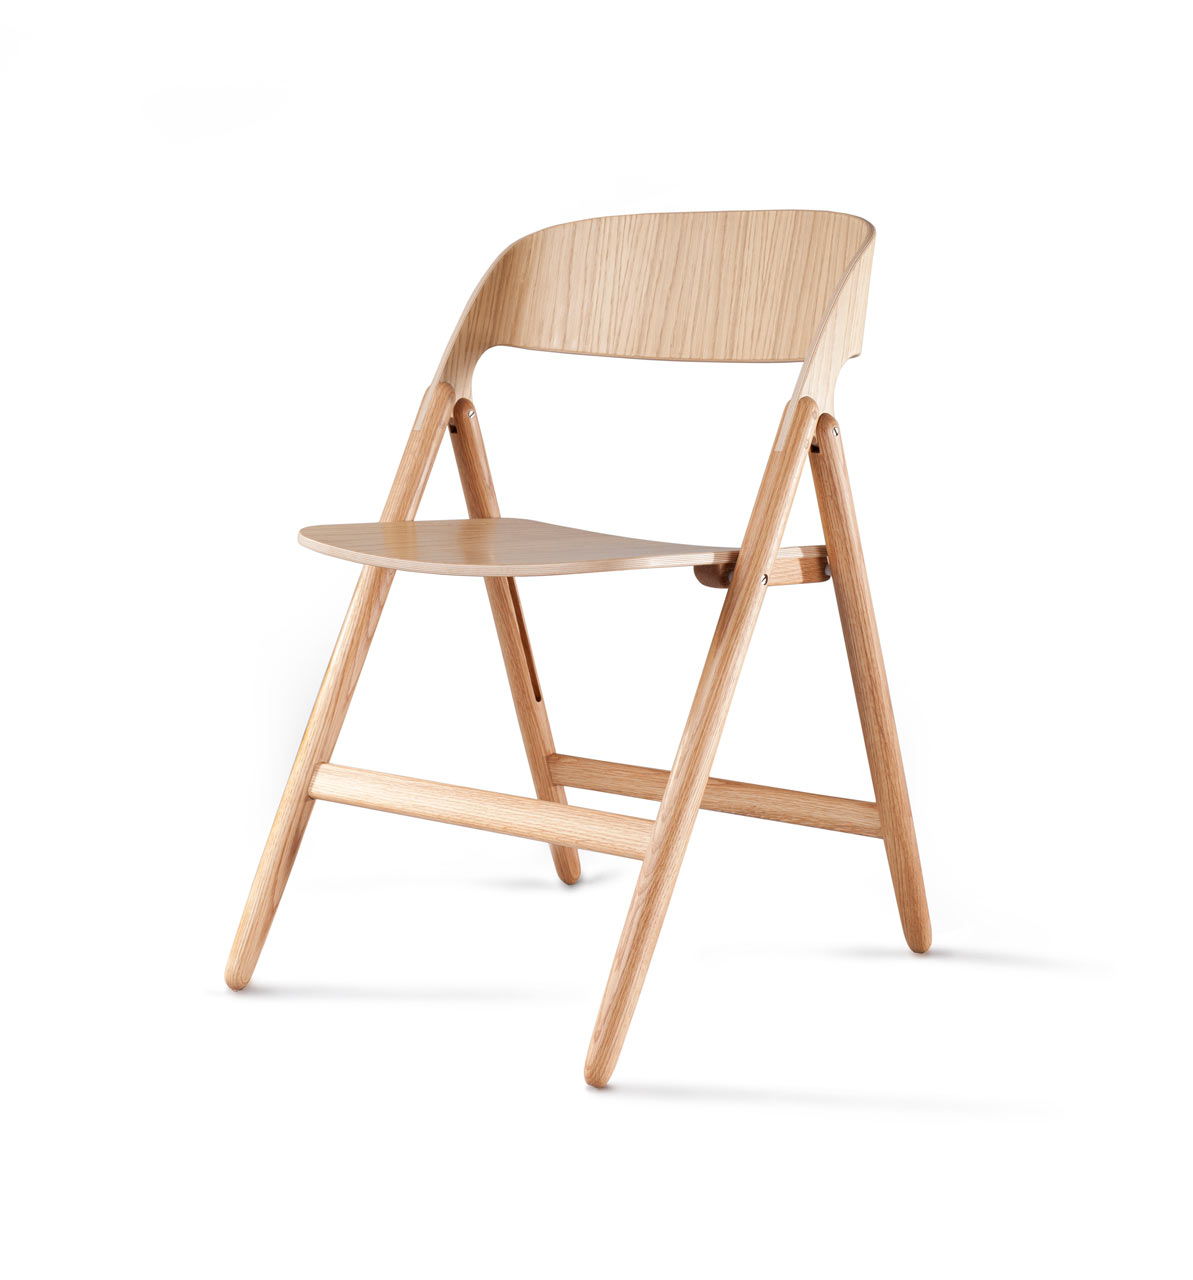 Designer Chair: The Folding Chair Gets A Modern Update